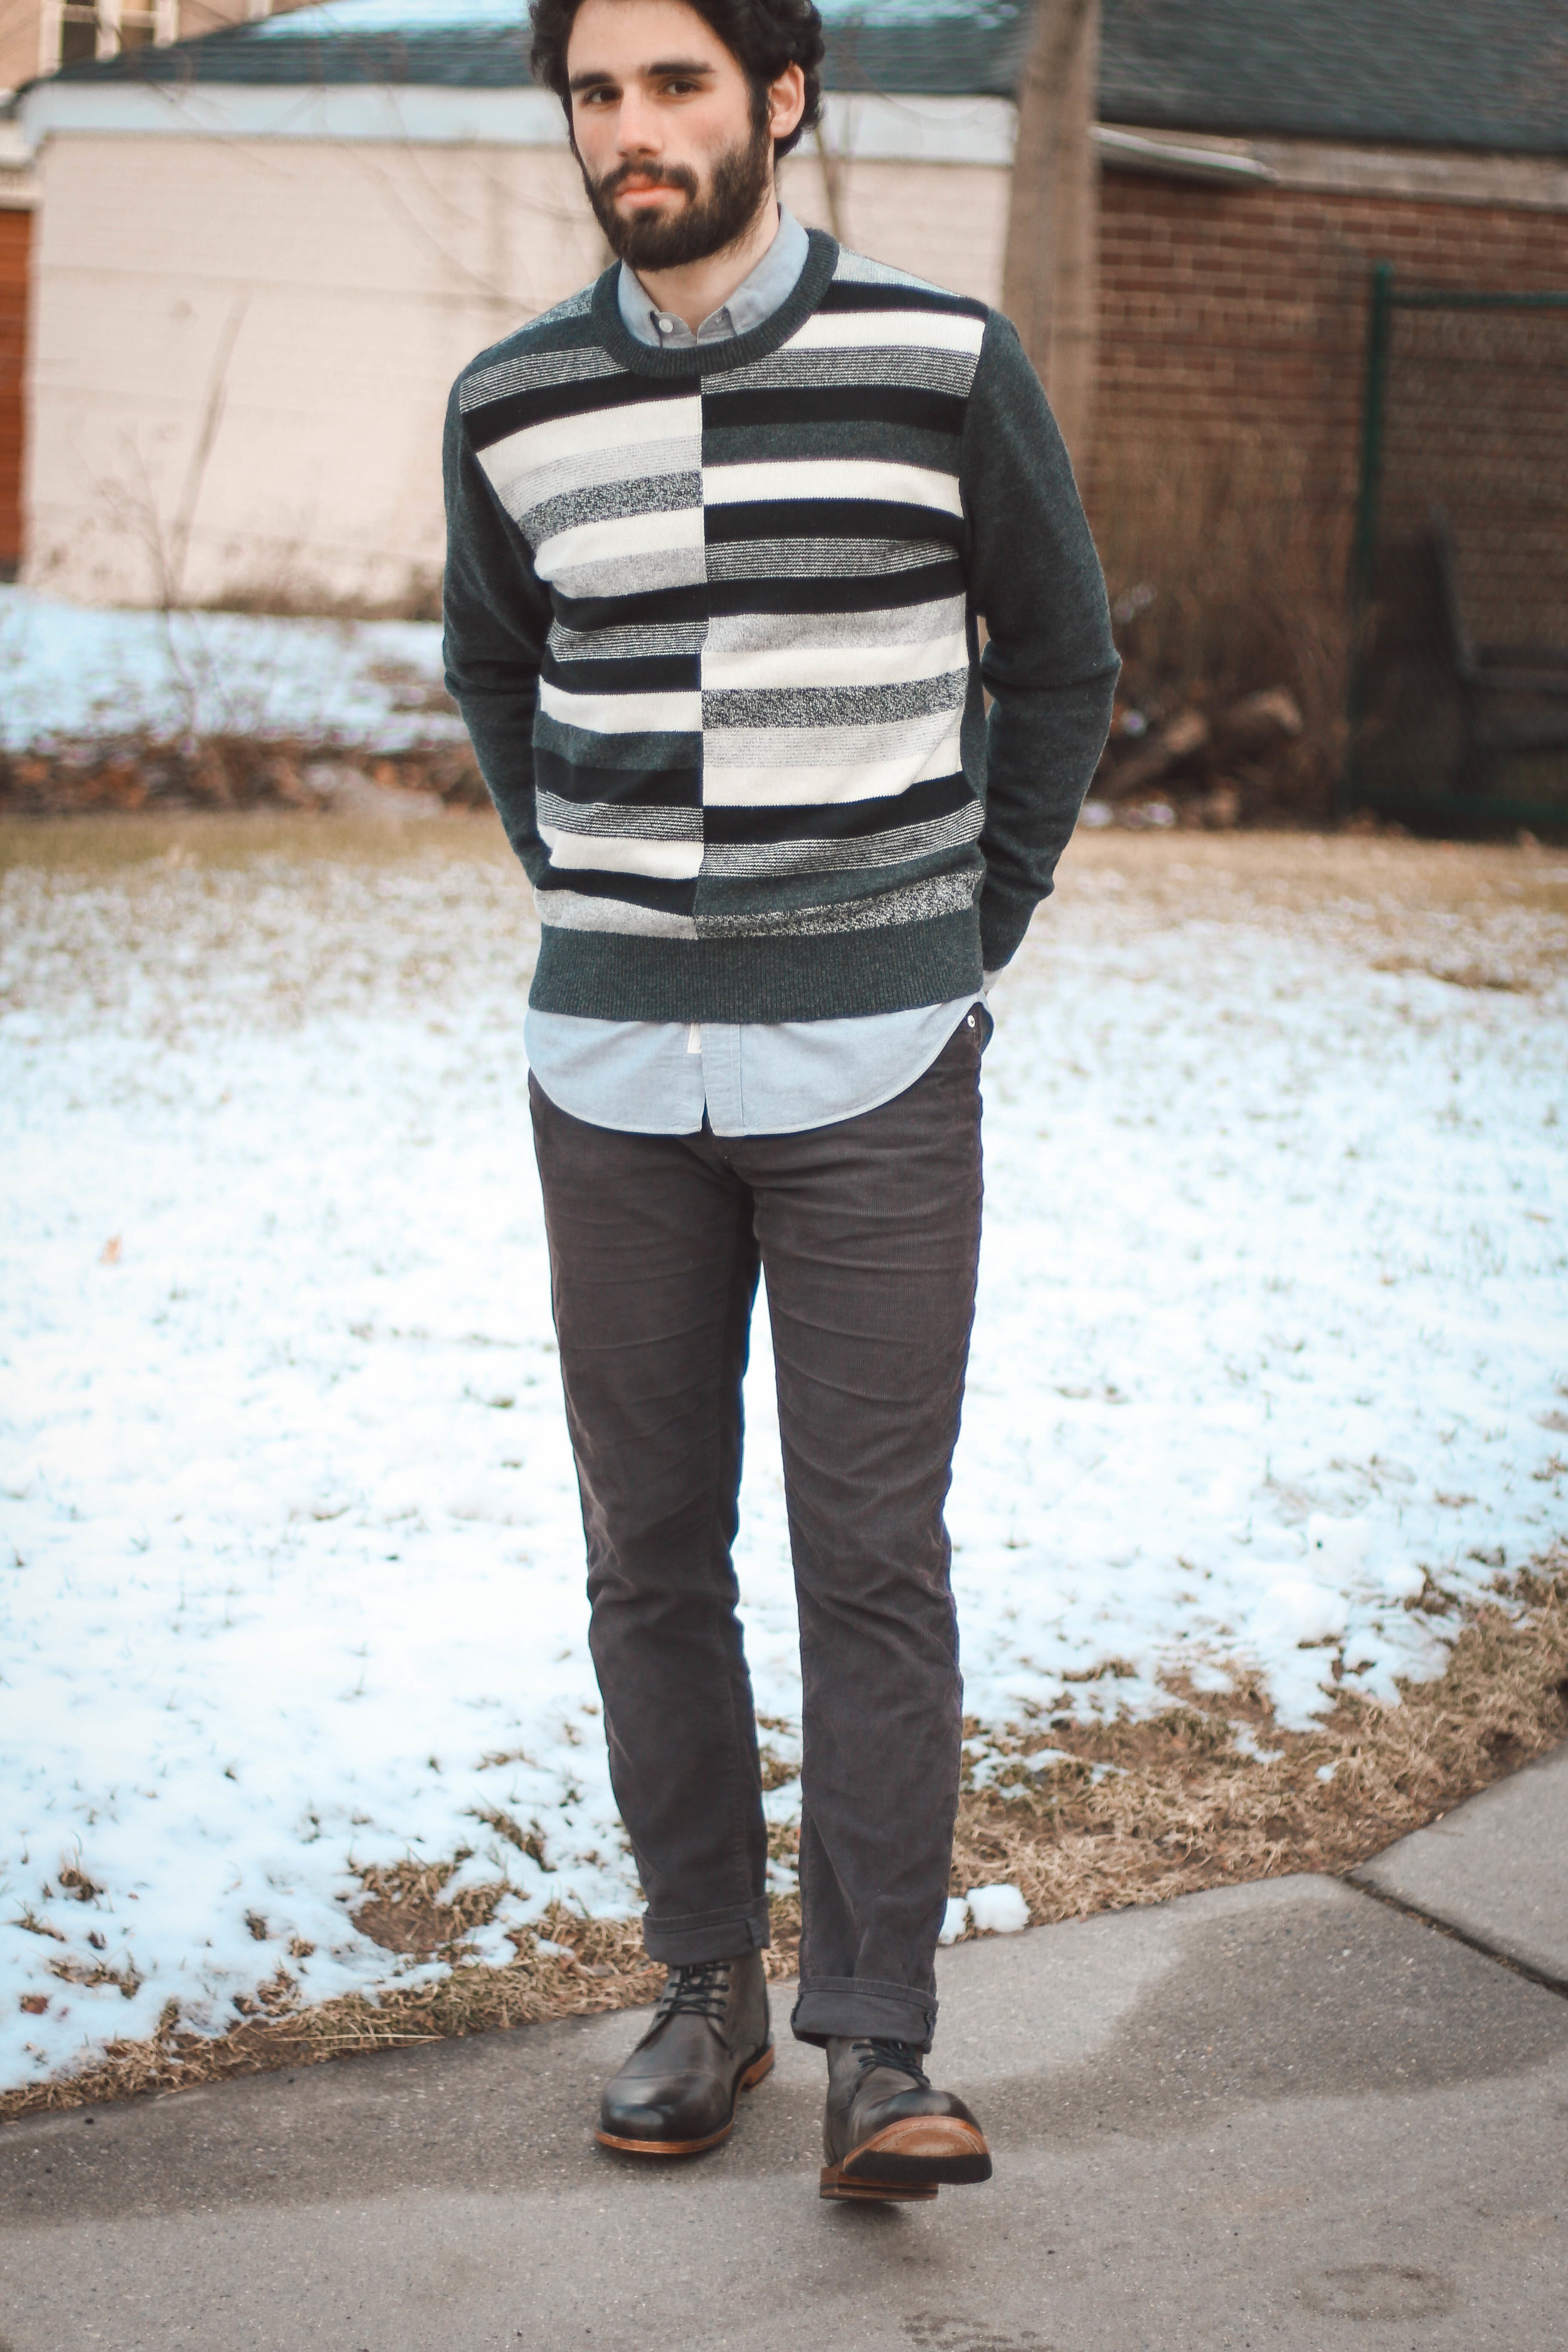 Even though it isn't a solid sweater, the whole look plays with one color: gray. Have fun with it!